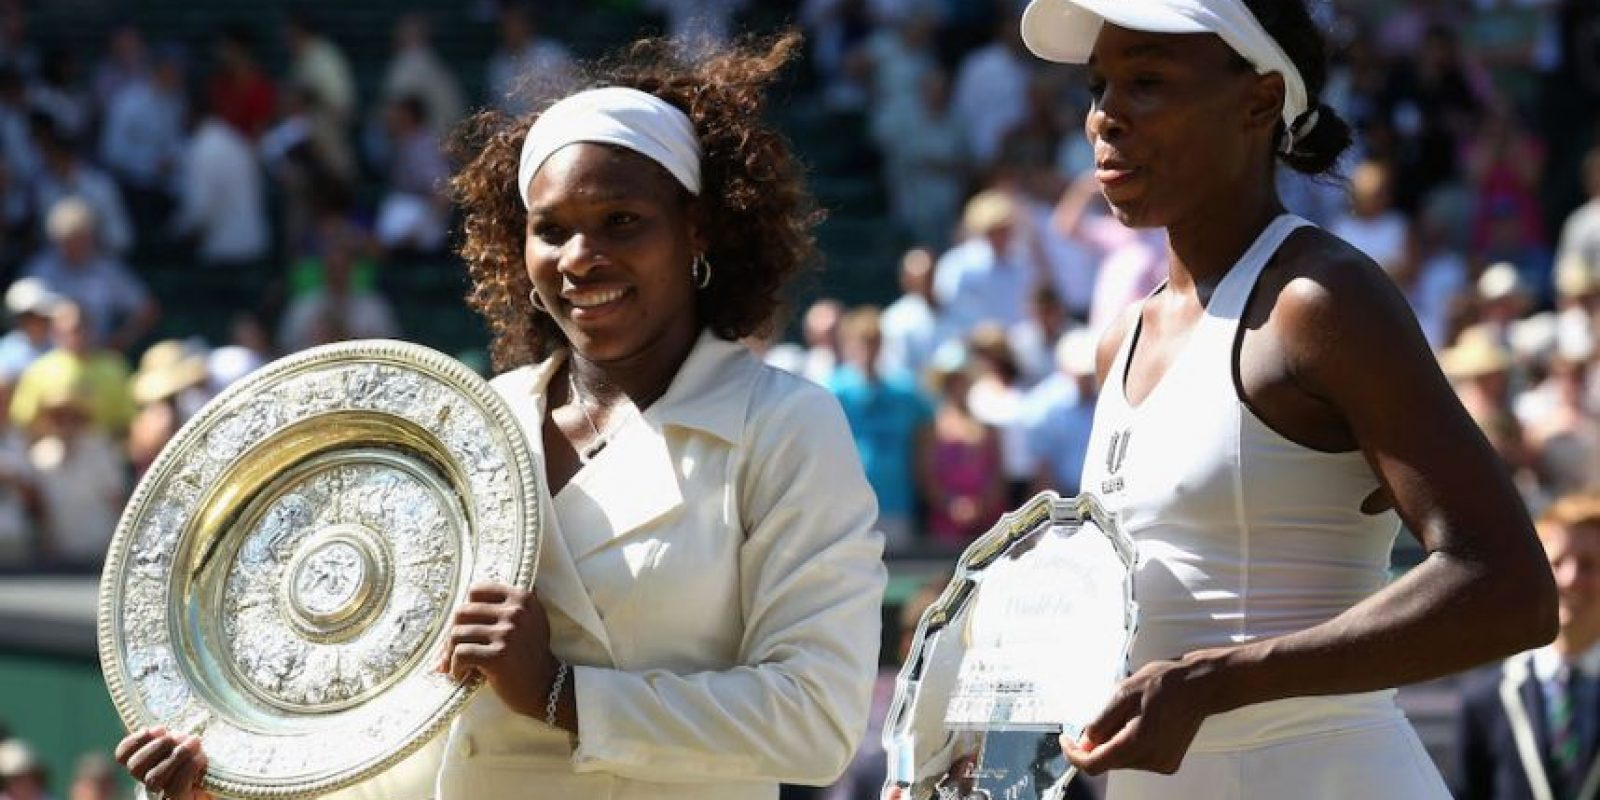 Serena ganó en dos sets ante su hermana Venus Williams. Foto: Getty Images